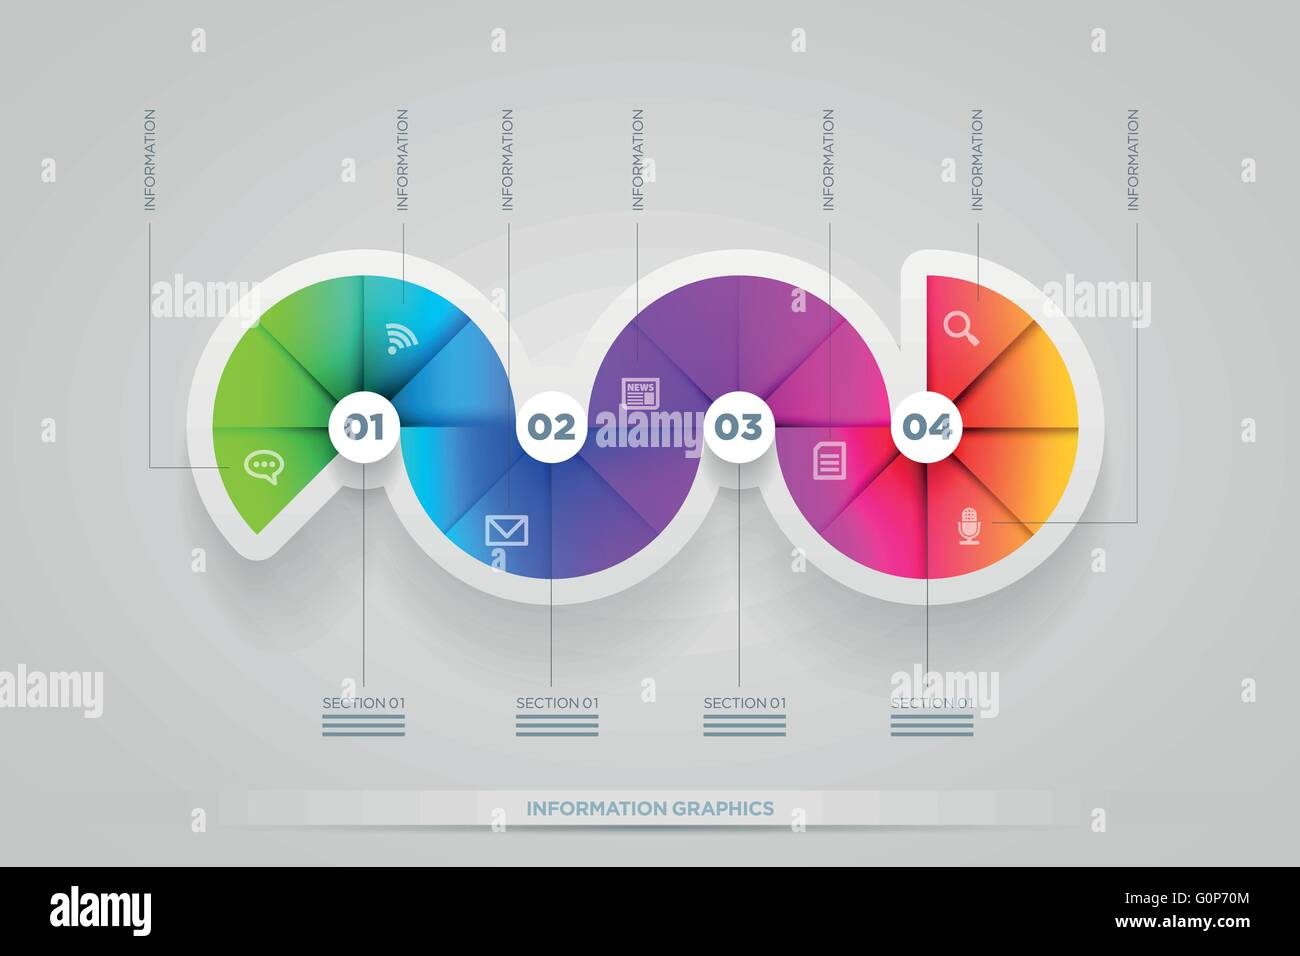 Vector abstract infographic design template. lights, shadows, color shapes etc. layered separately in vector file. - Stock Image